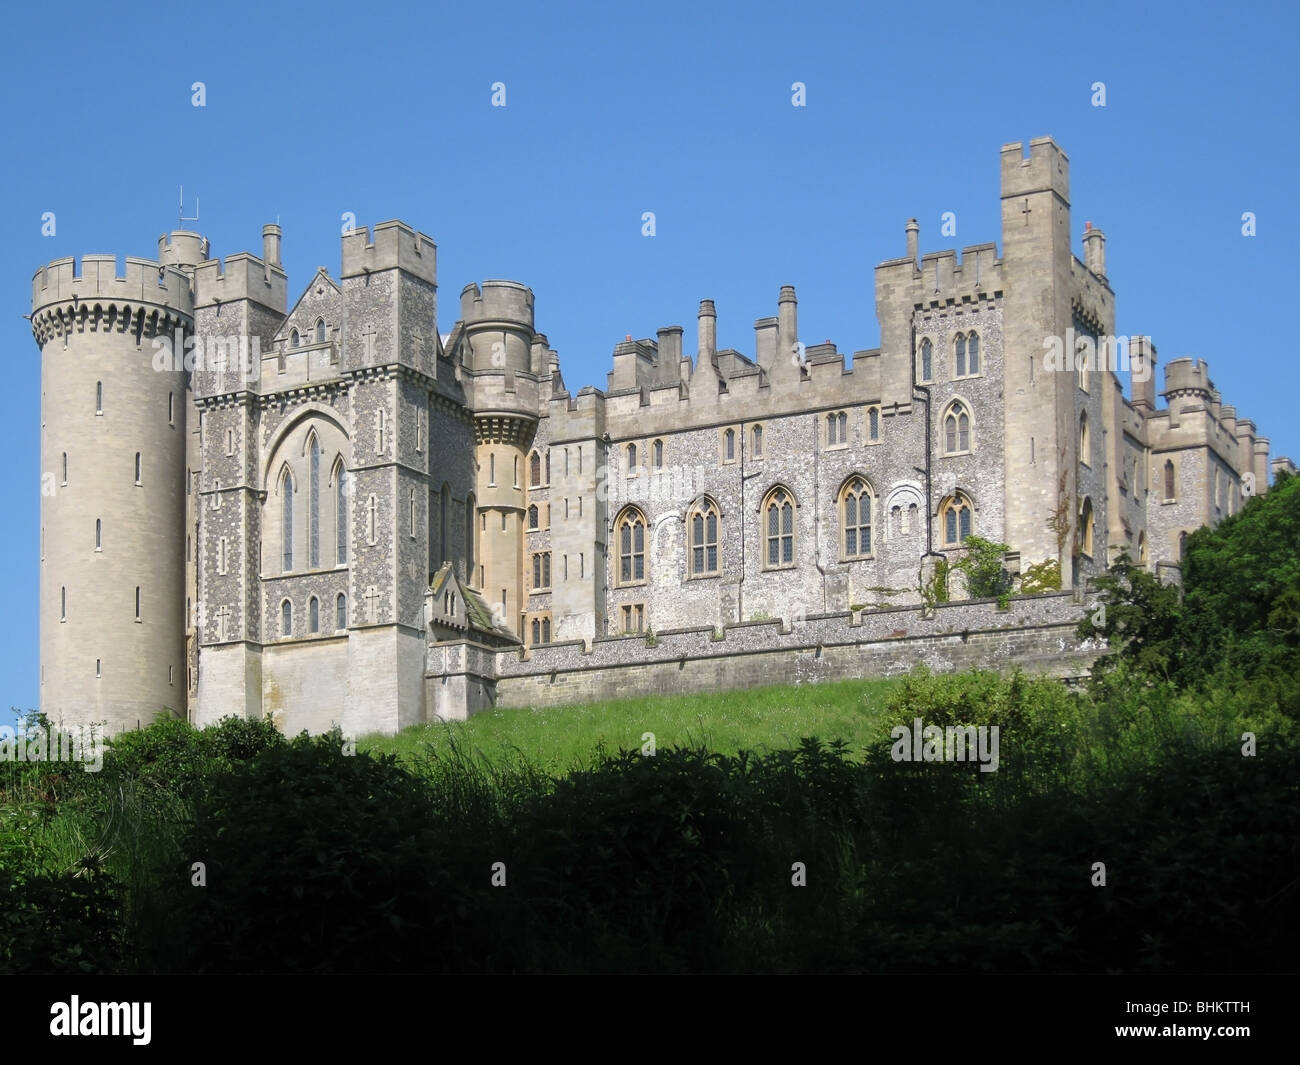 Arundel Castle, seat of The Dukes of Norfolk, West Sussex - 2 - Stock Image